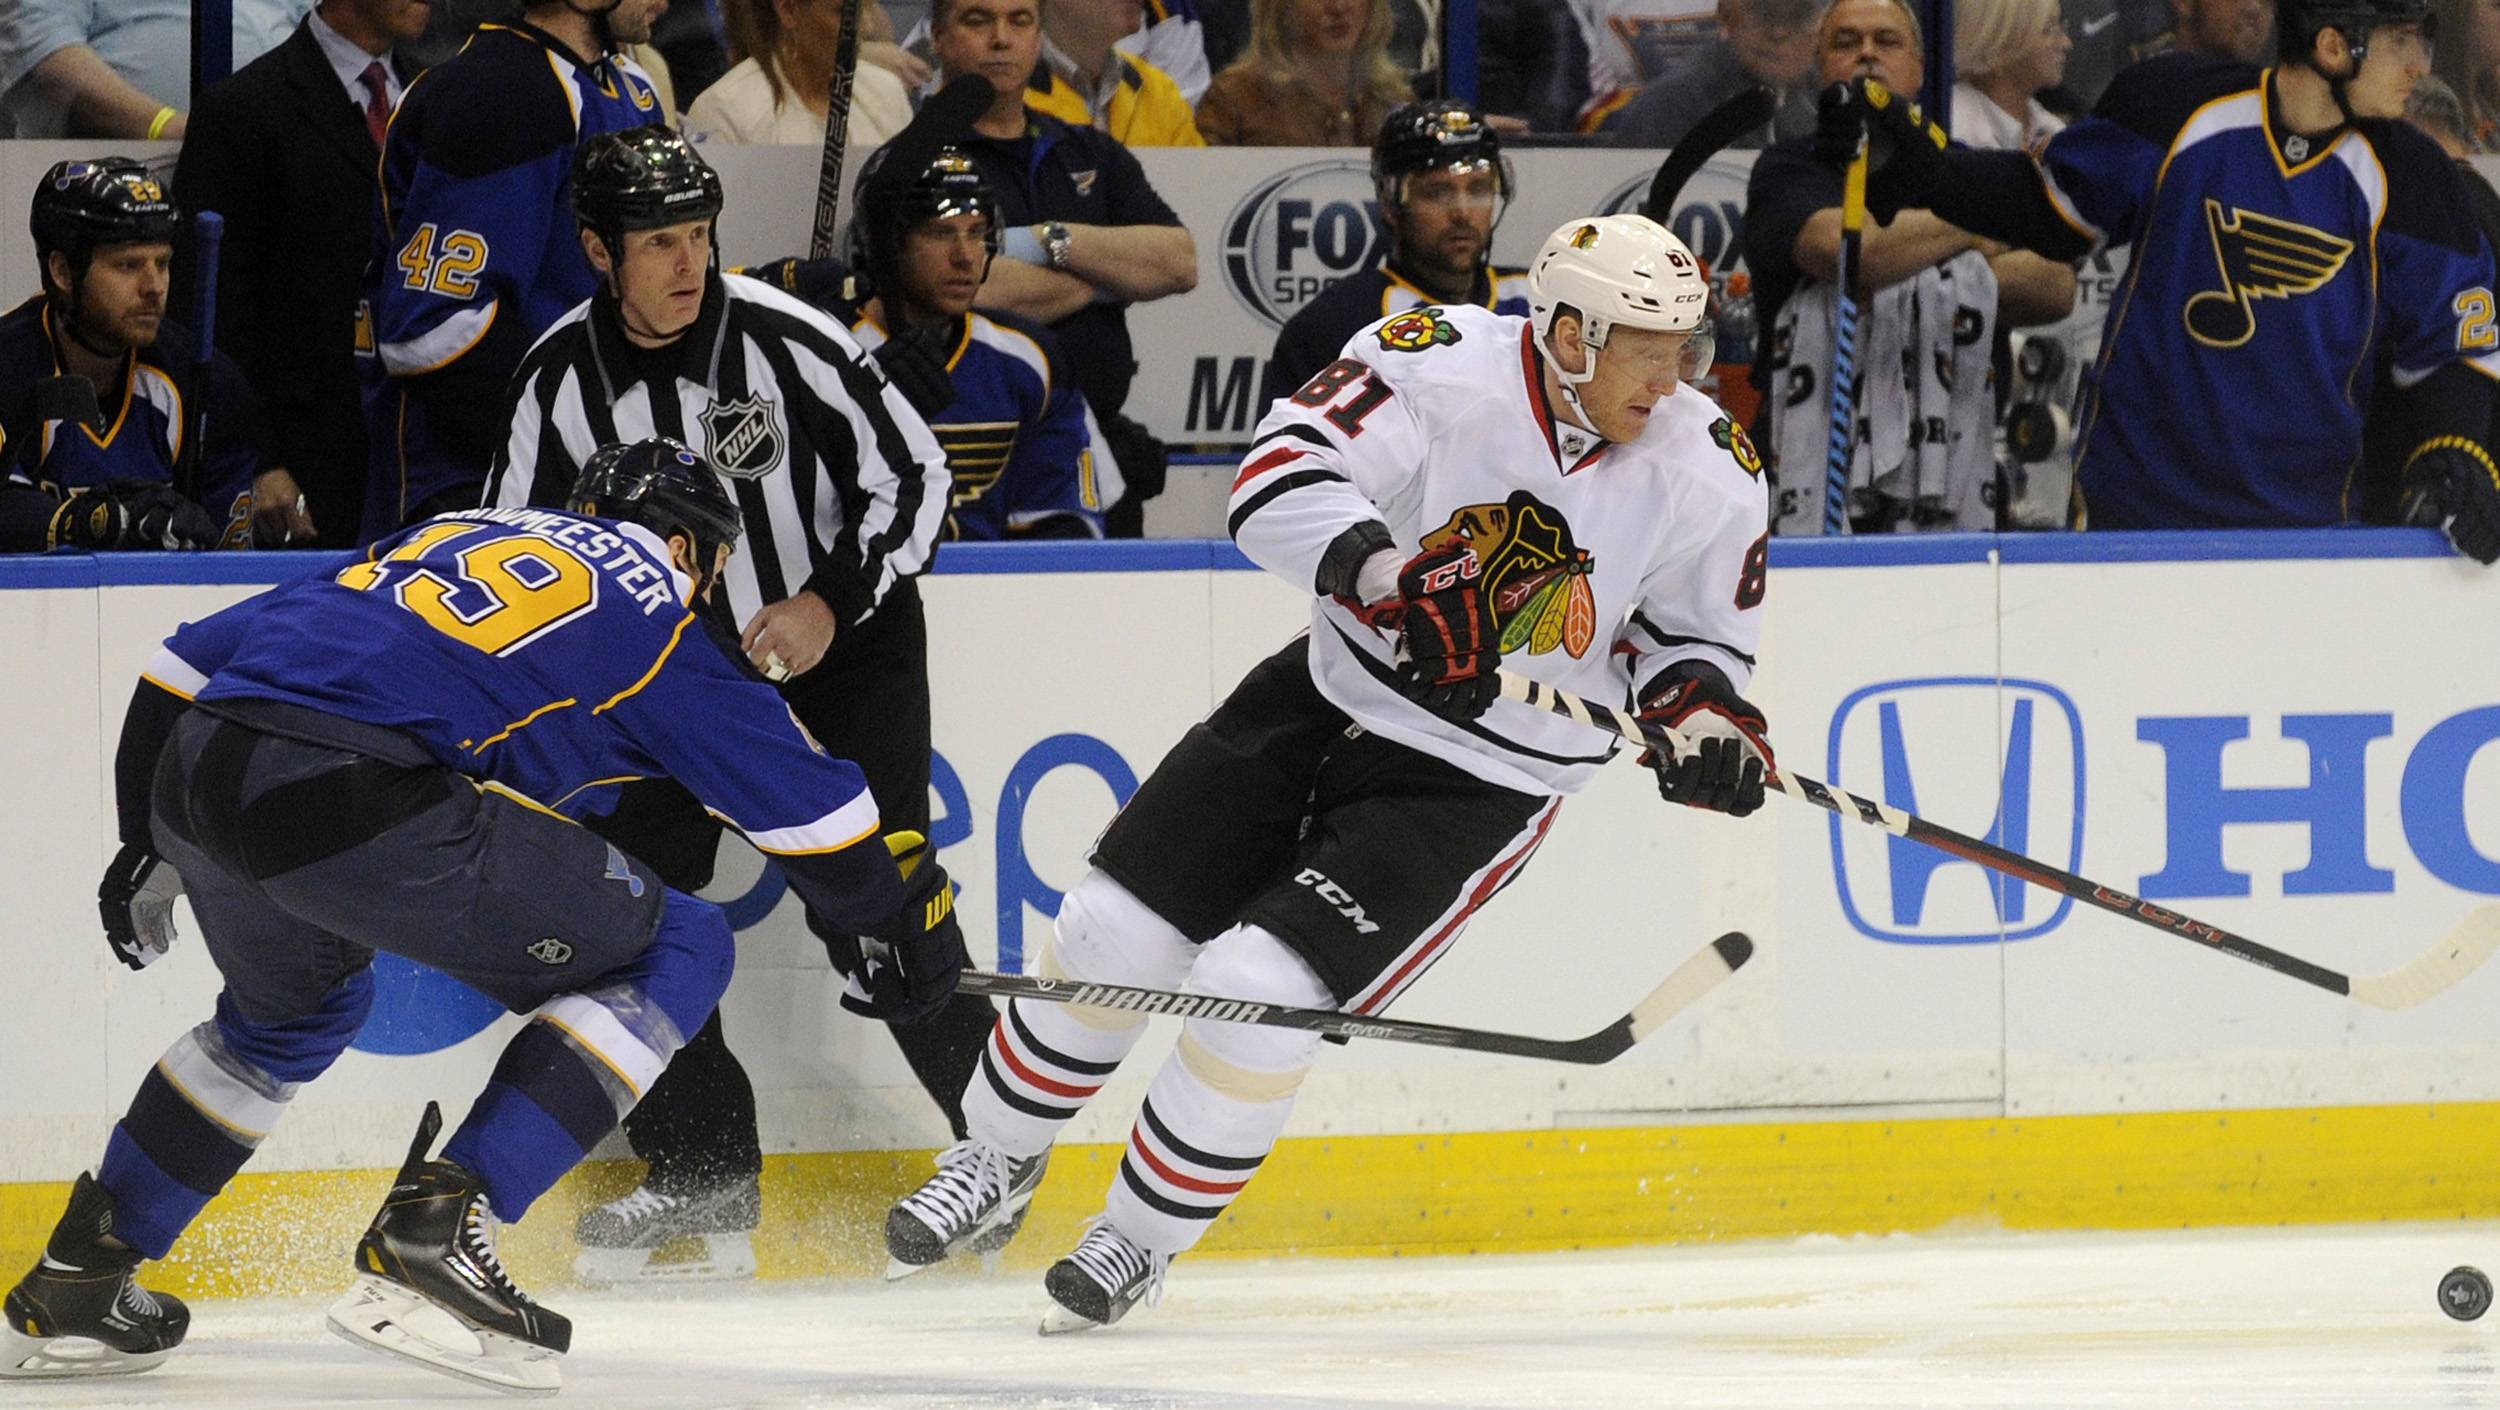 Images: Blackhawks vs. Blues, Game Two